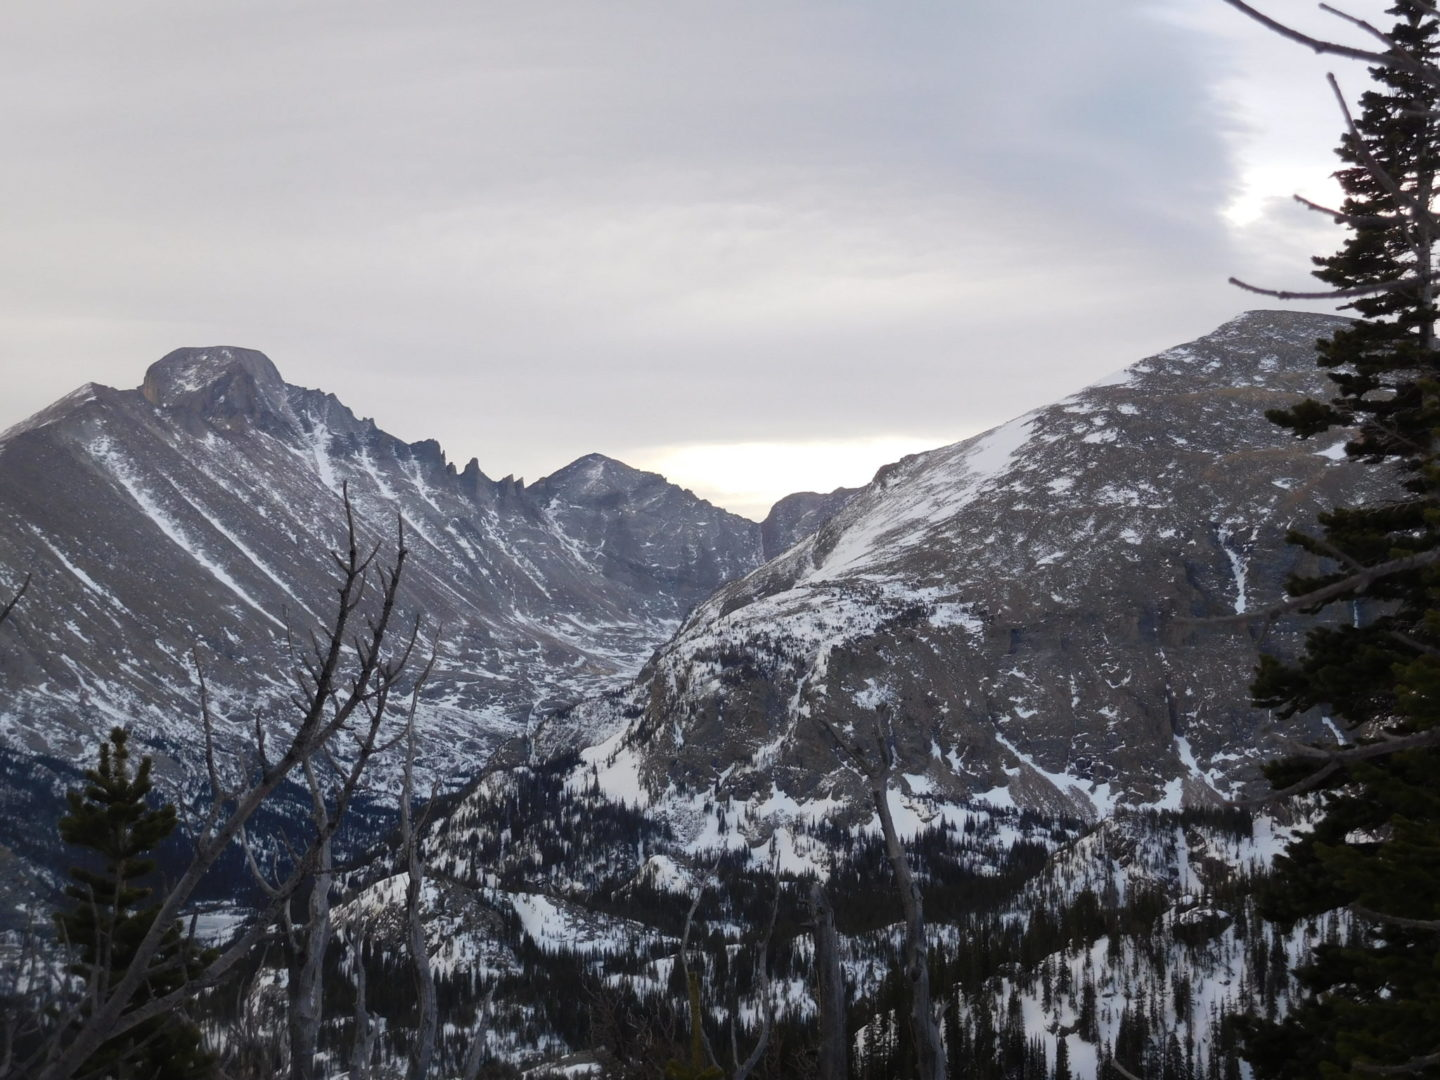 Longs Peak (left) and Thatchtop Mountain on the right